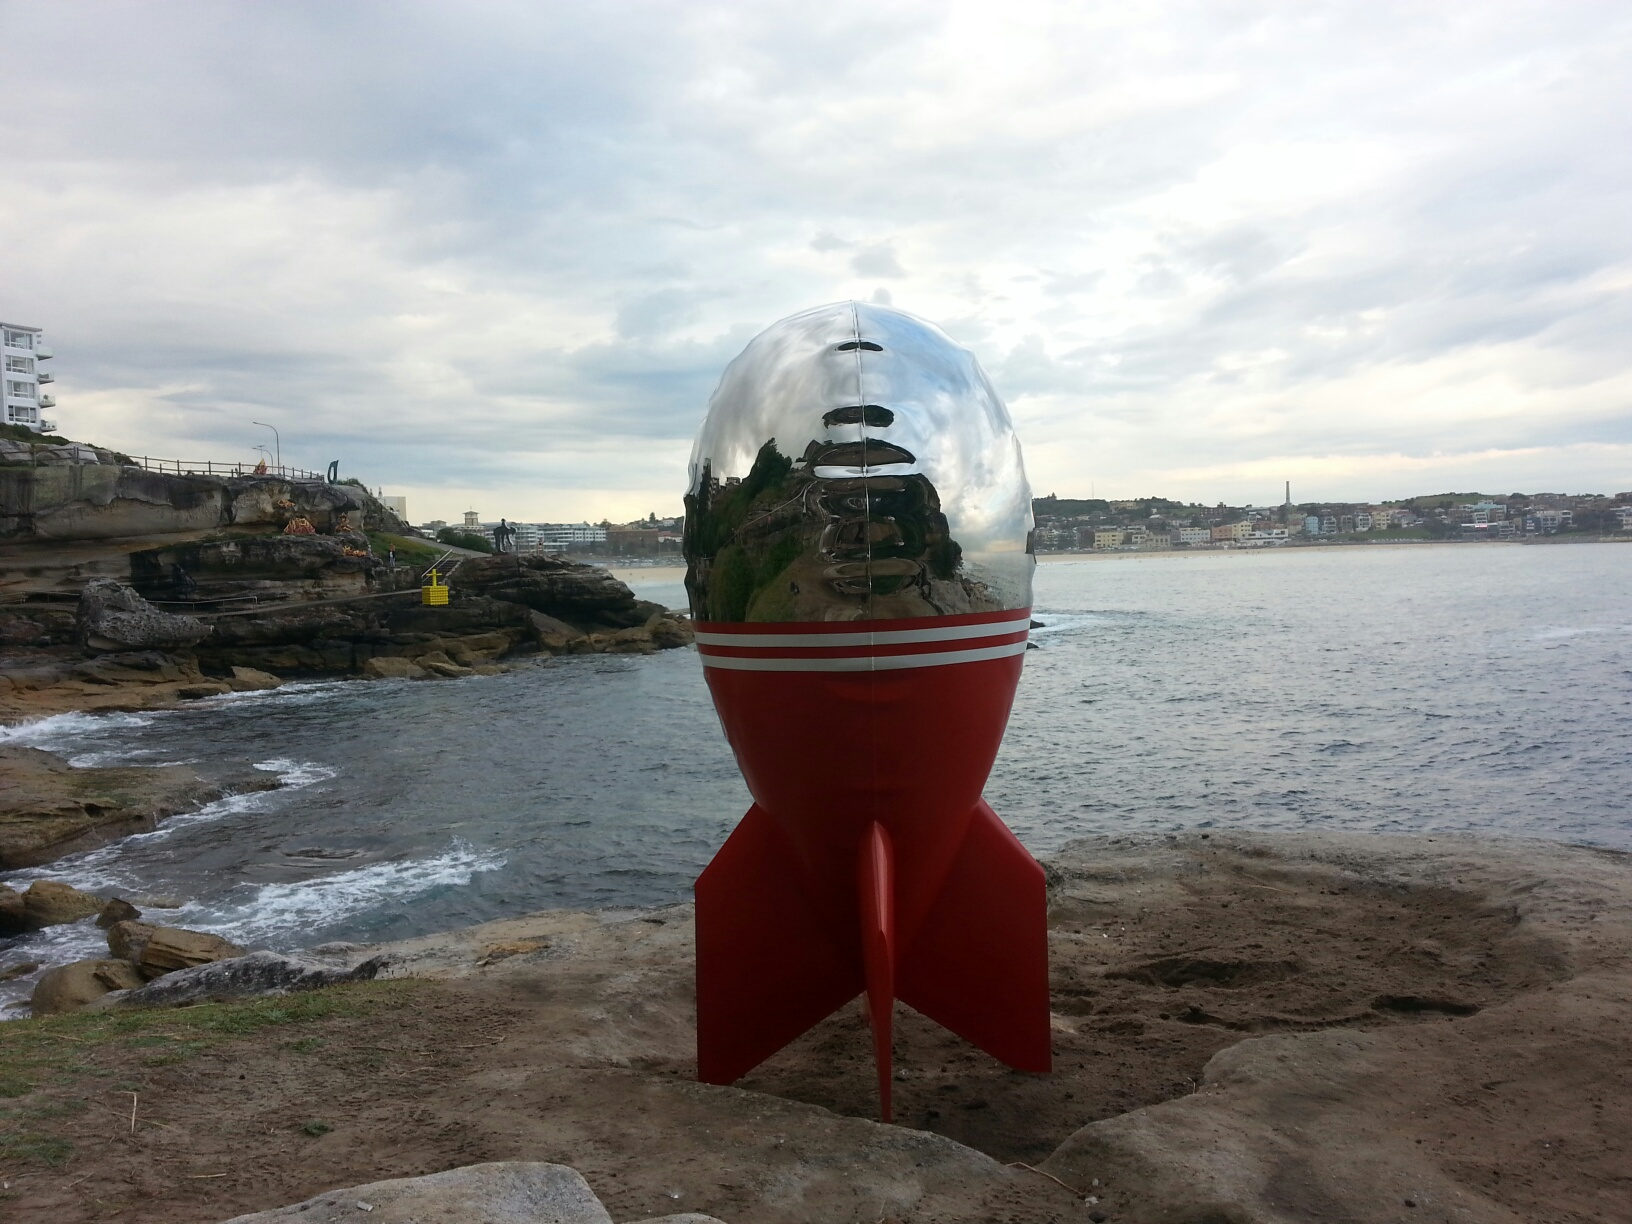 David McCracken's in the 19th Annual Sculpture by the Sea, Bondi, 2015.